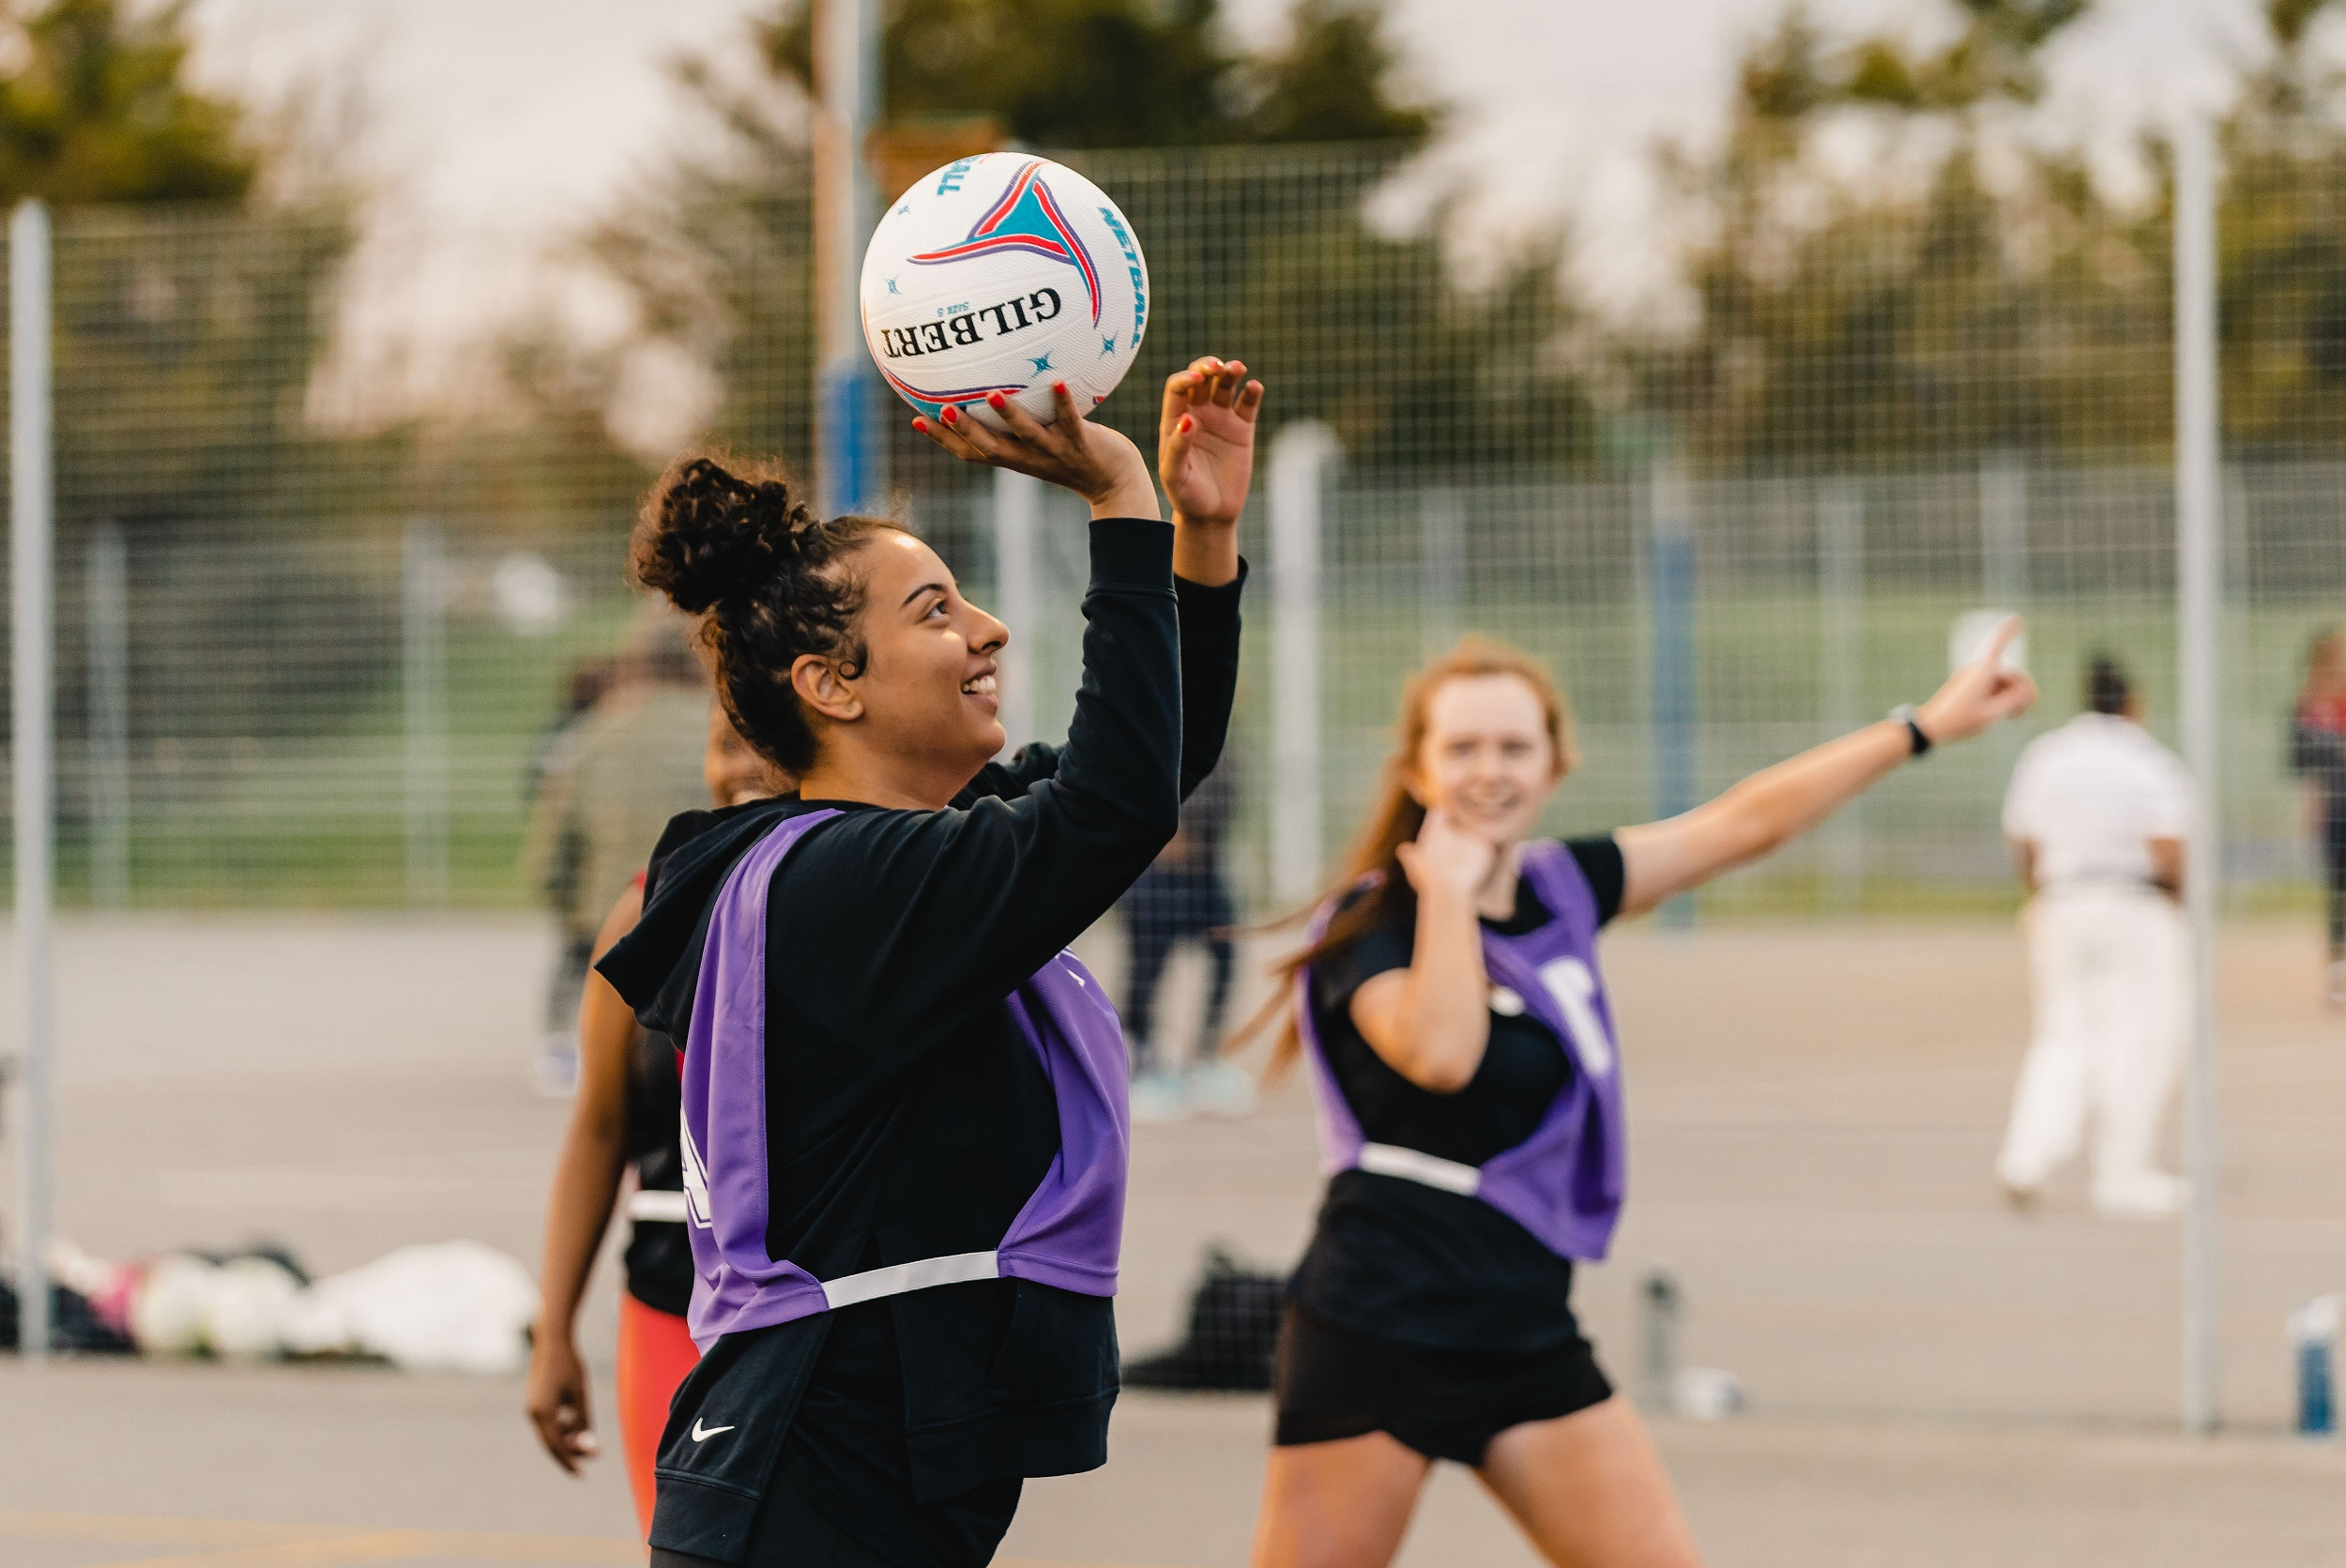 Netball to move to Step 4 of the Roadmap